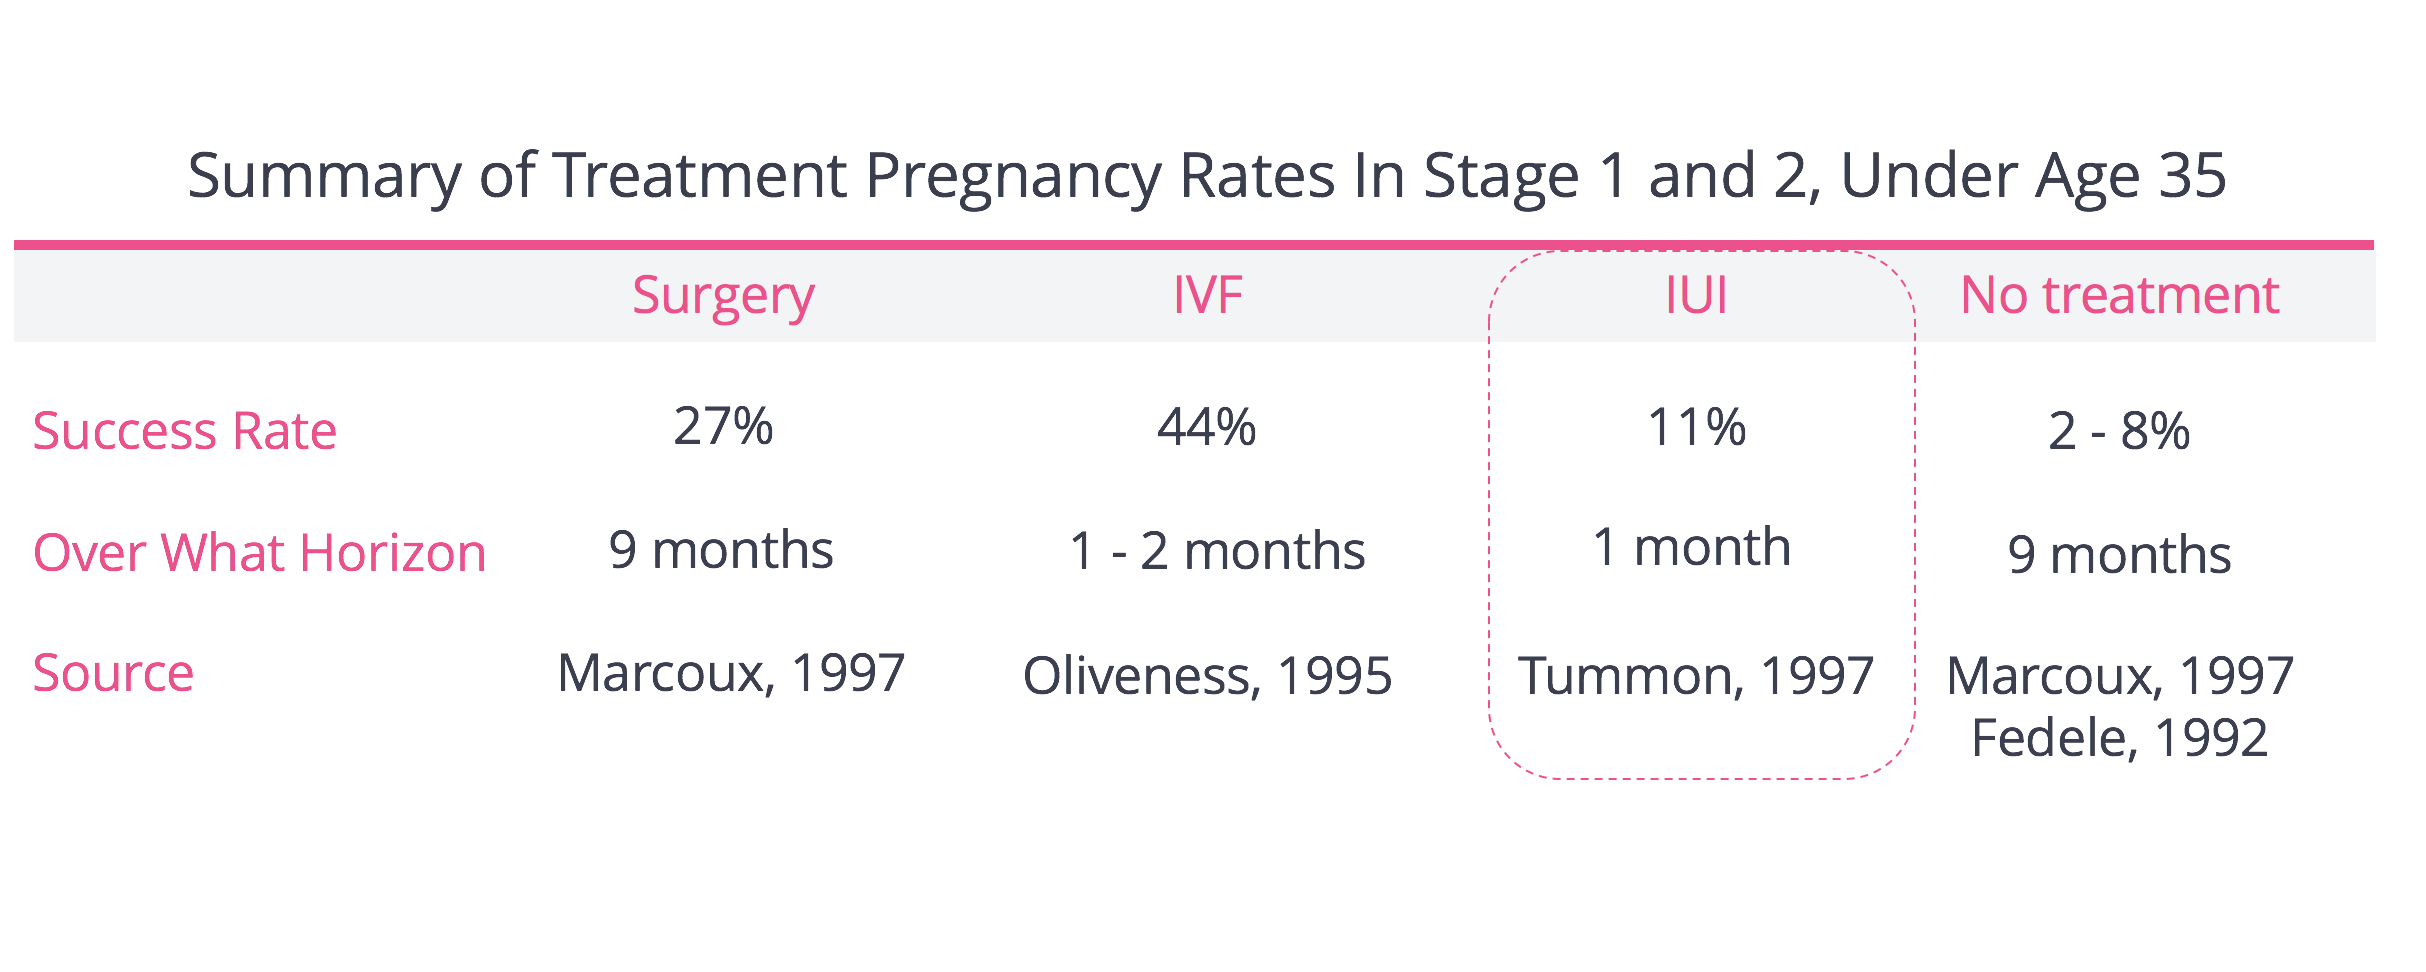 IUI For Endometriosis - Pregnancy Rates for Stage 1 and Stage 2 Endo